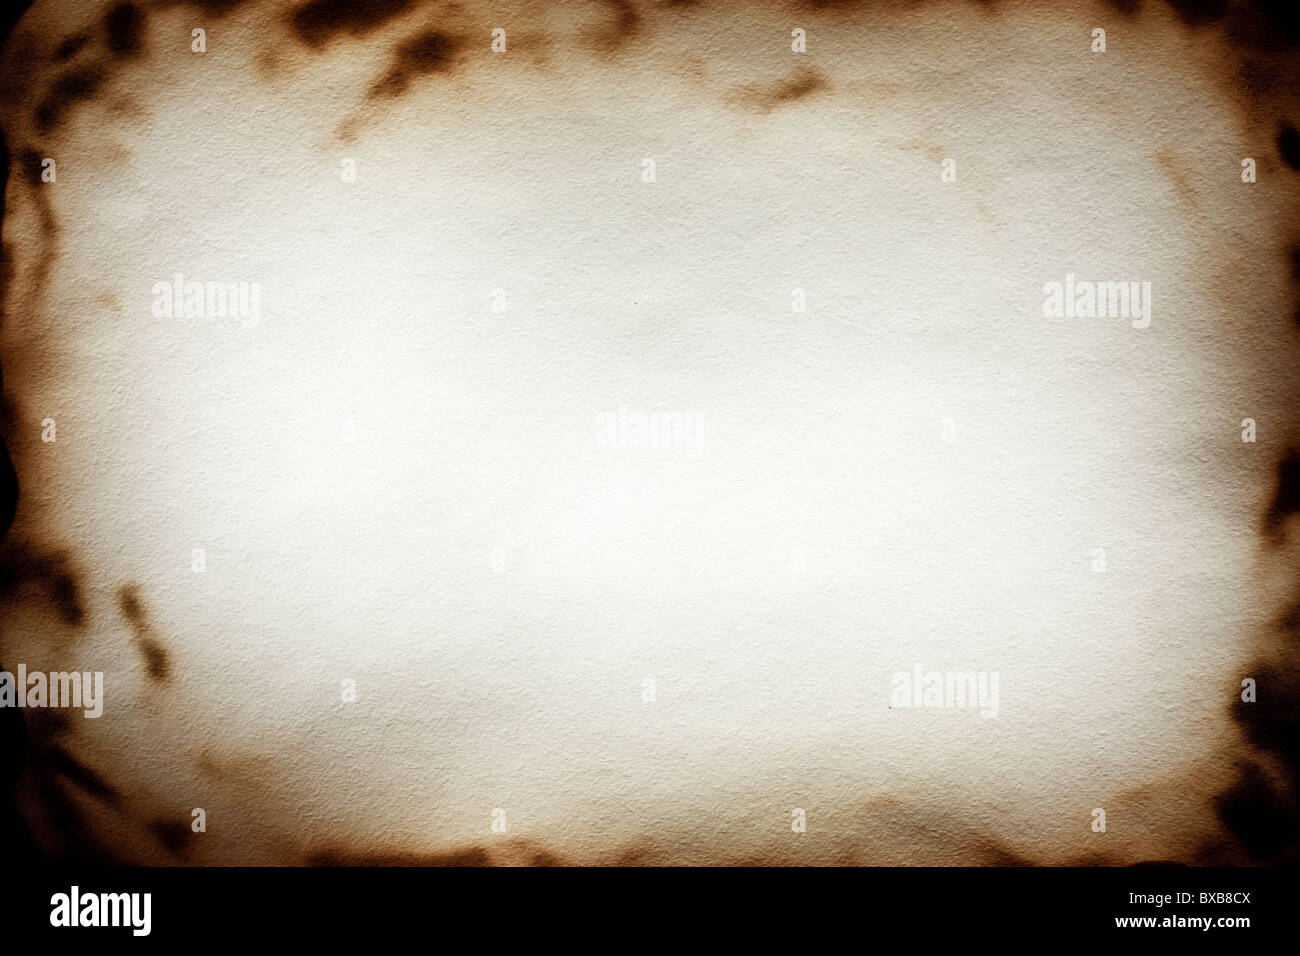 Burnt at the edges textured paper - Stock Image